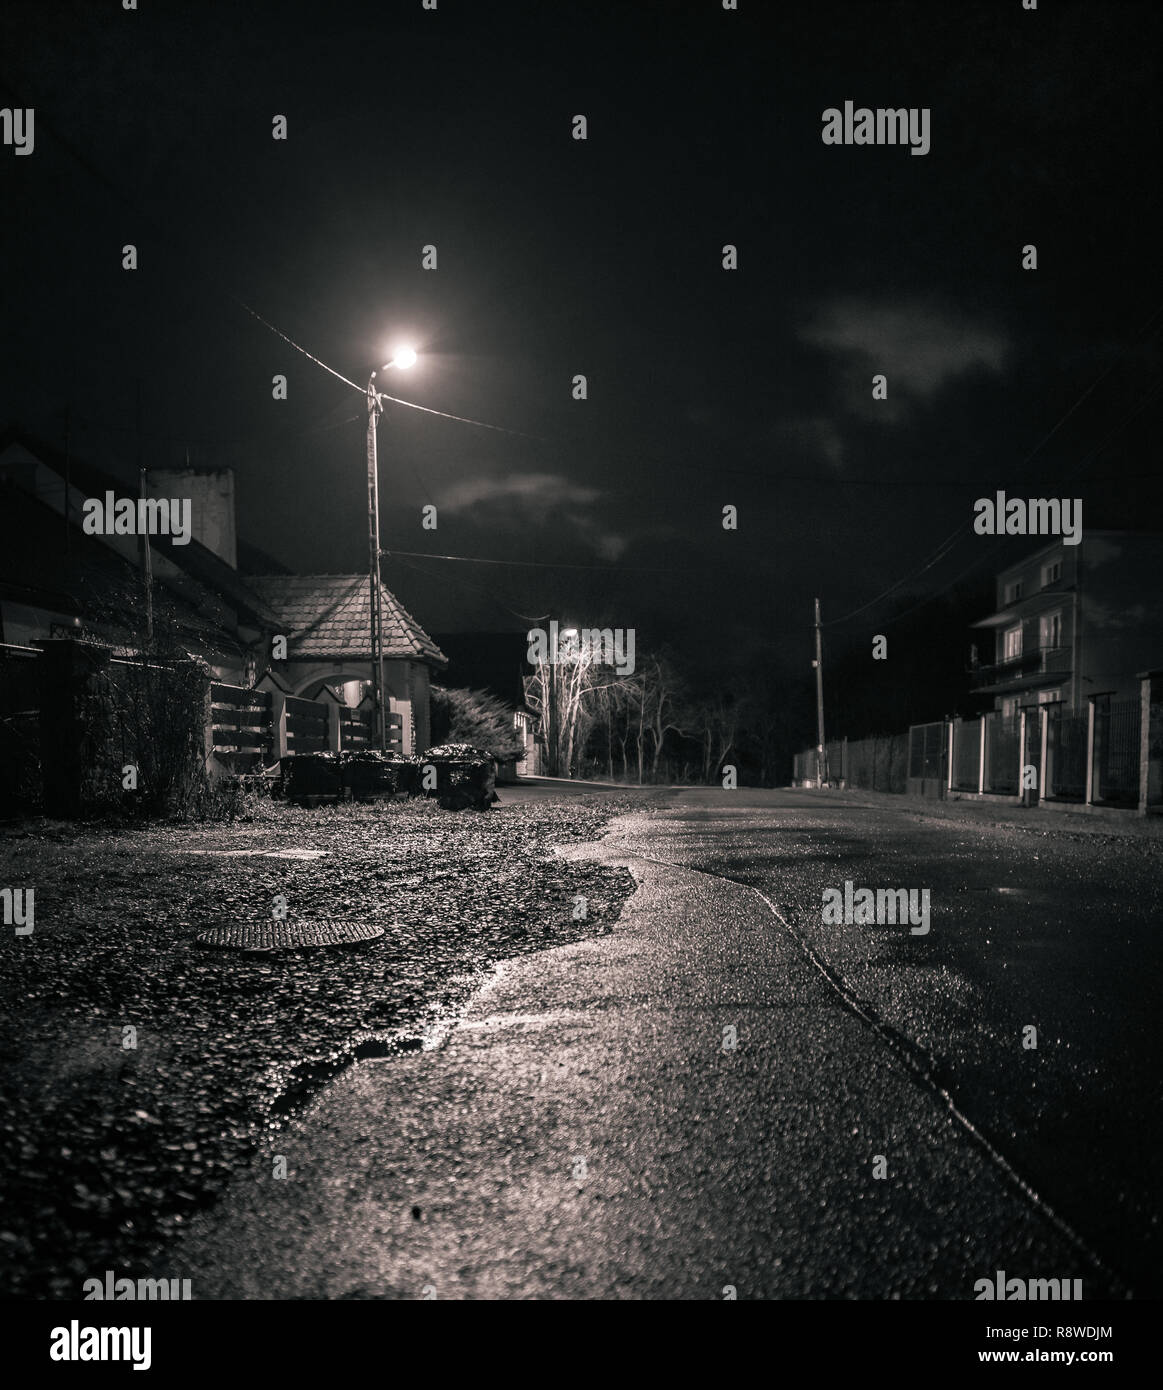 Ruelle décrépite rurales de l'Est de l'Europe par nuit, Photo Stock